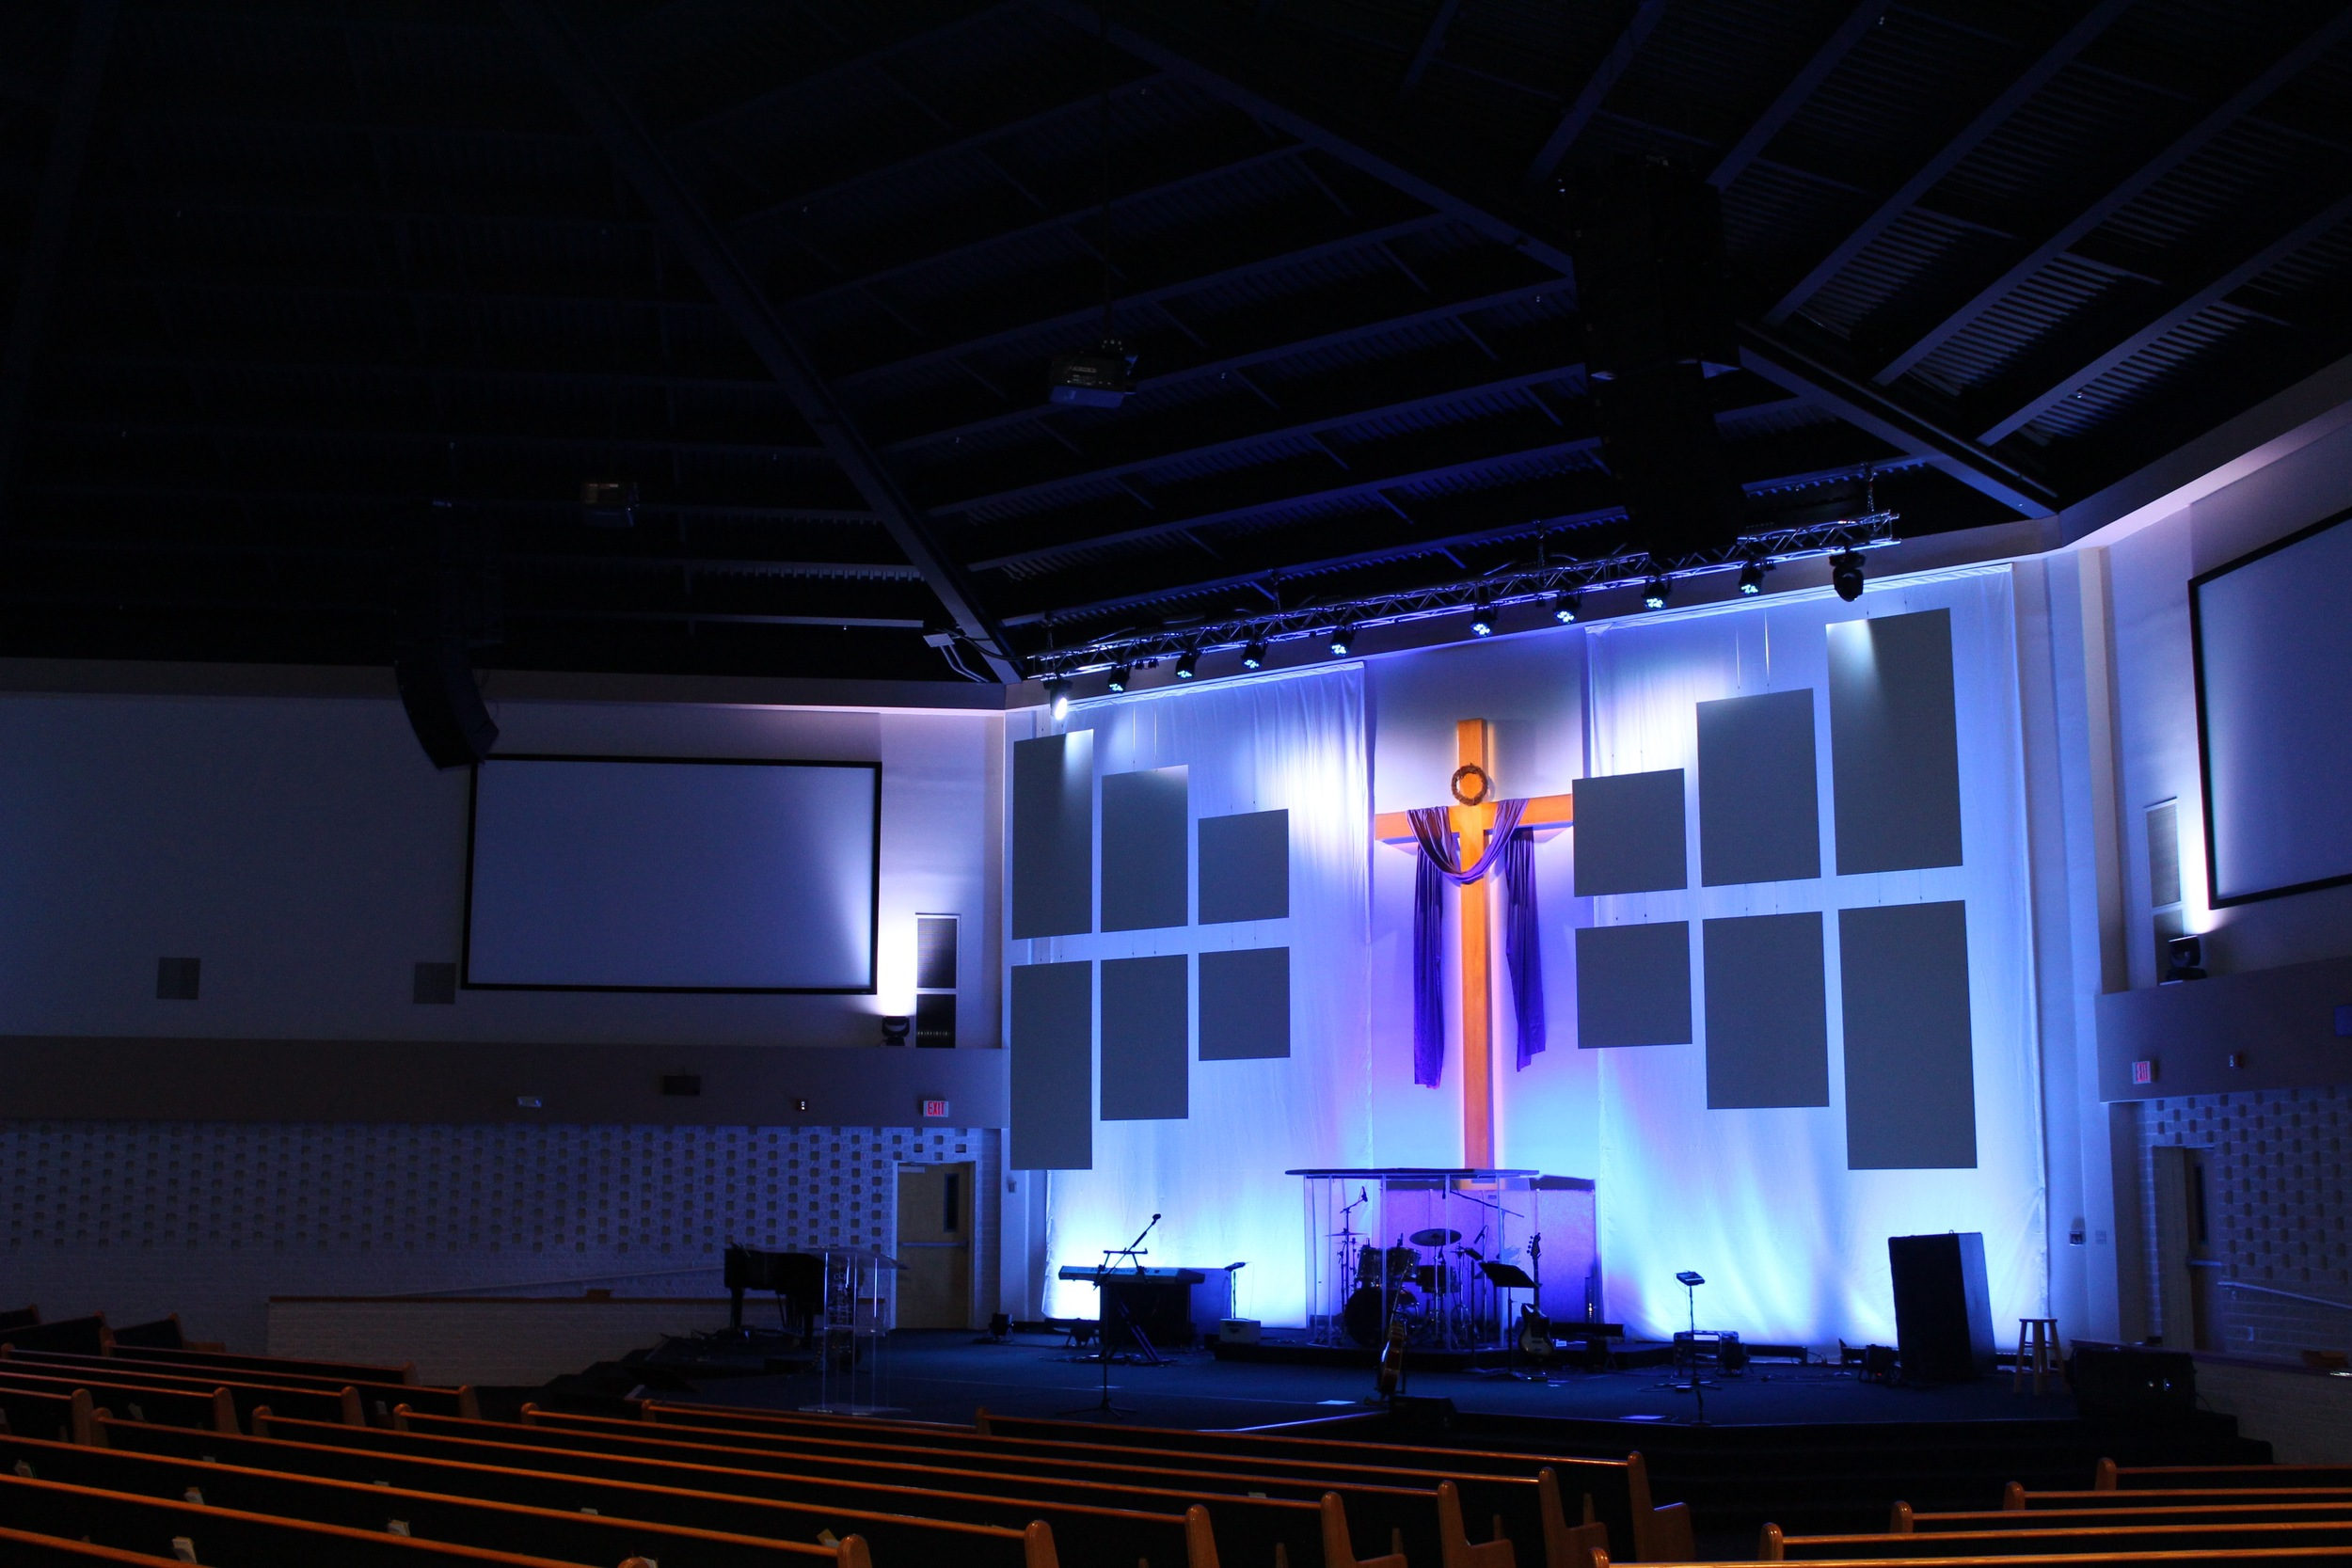 Chesapeake_Christian_Fellowship_Church_06.jpg